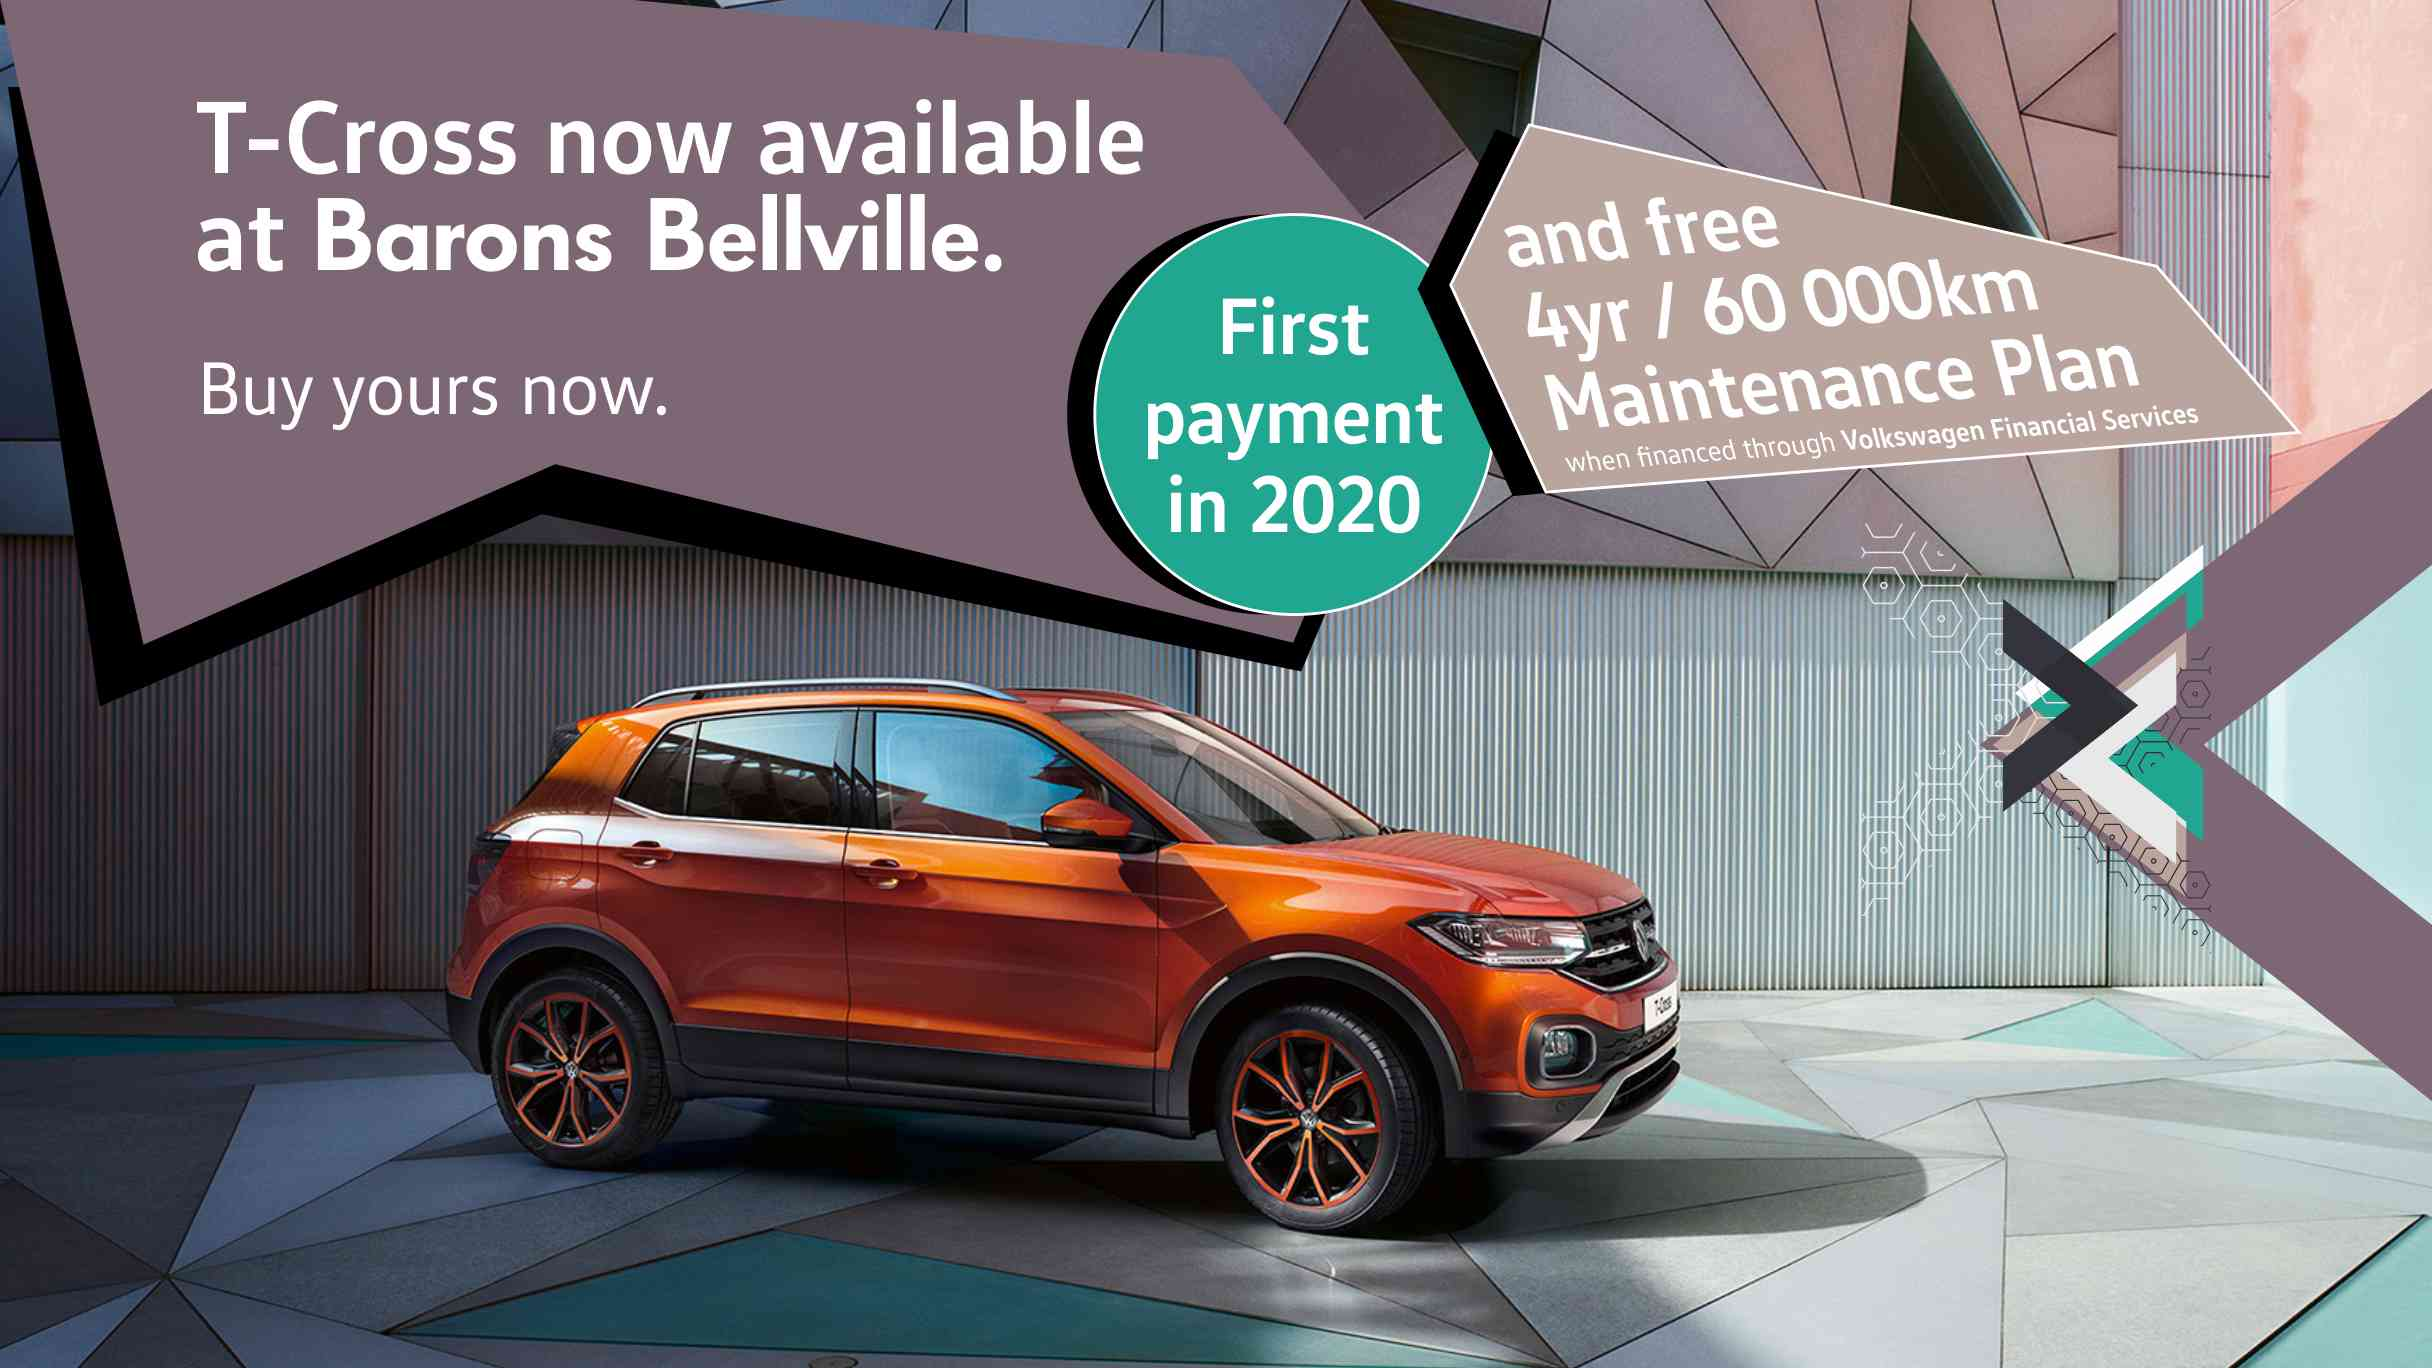 Buy the T-Cross today and pay in 2020 at Barons Bellville